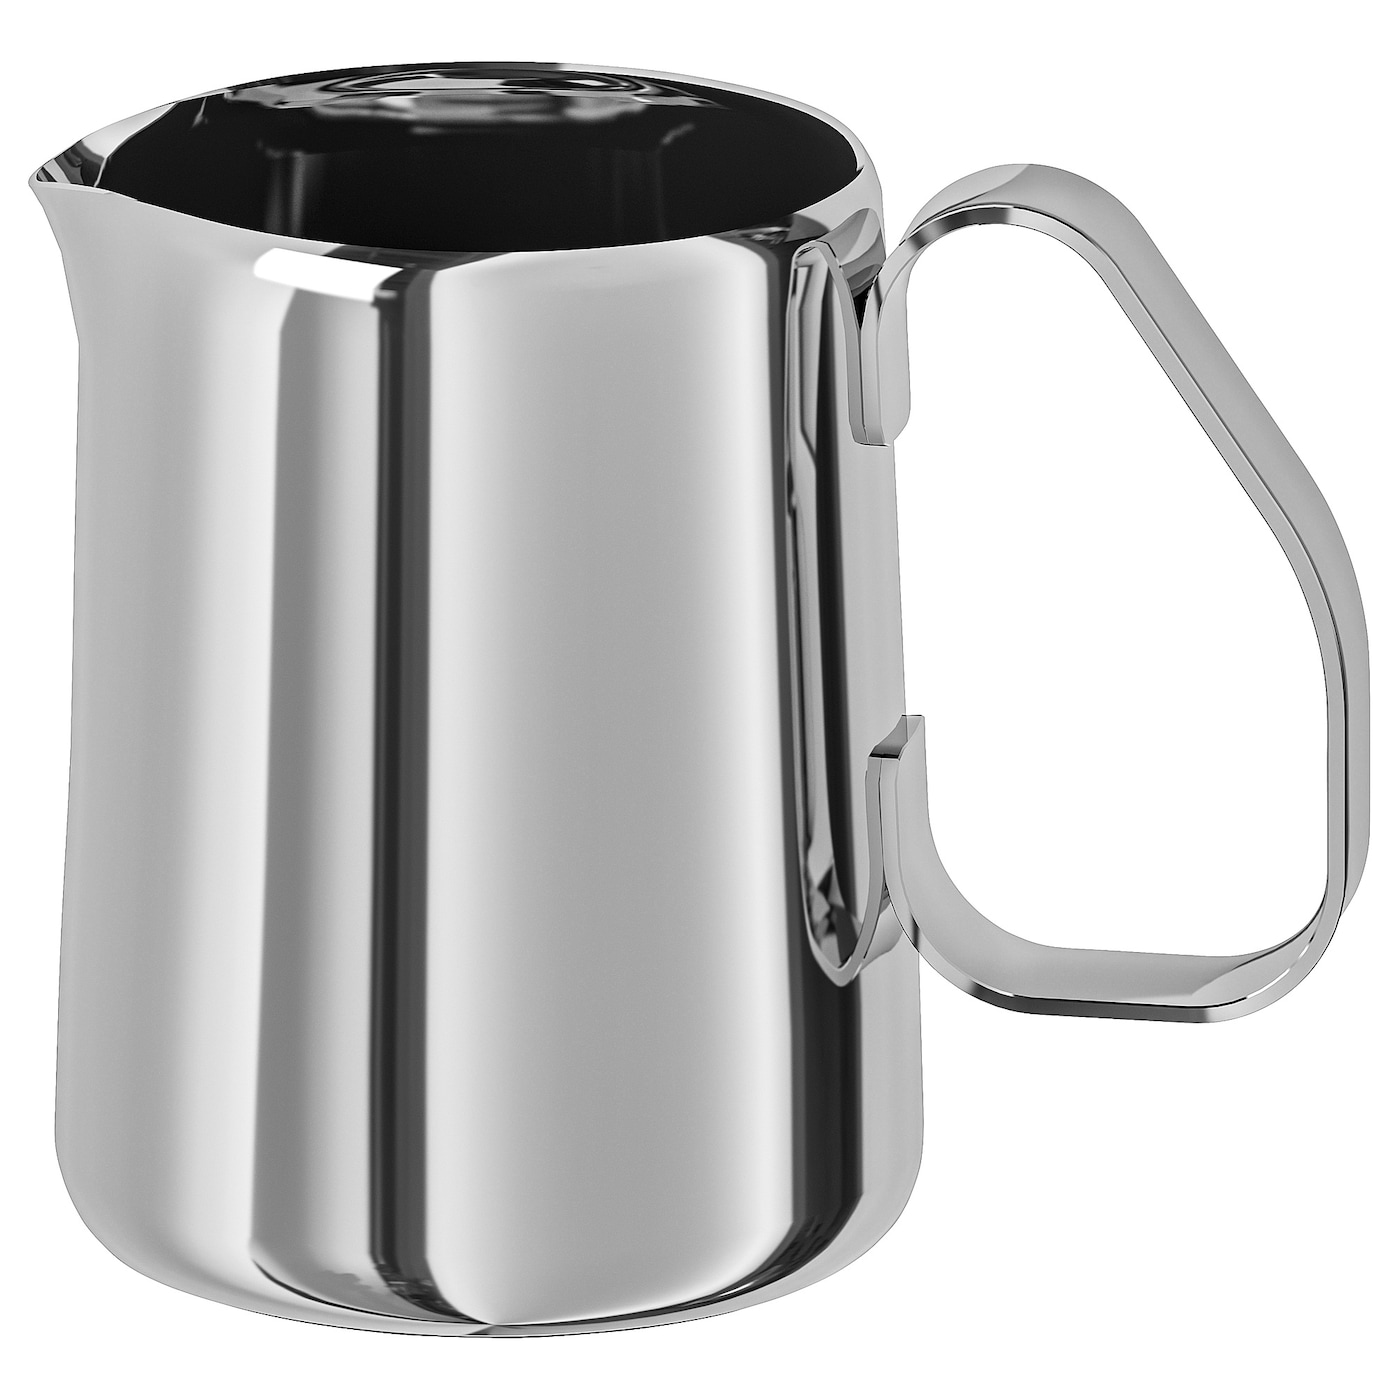 IKEA MÅTTLIG milk-frothing jug Made from stainless steel that is durable and easy to clean.